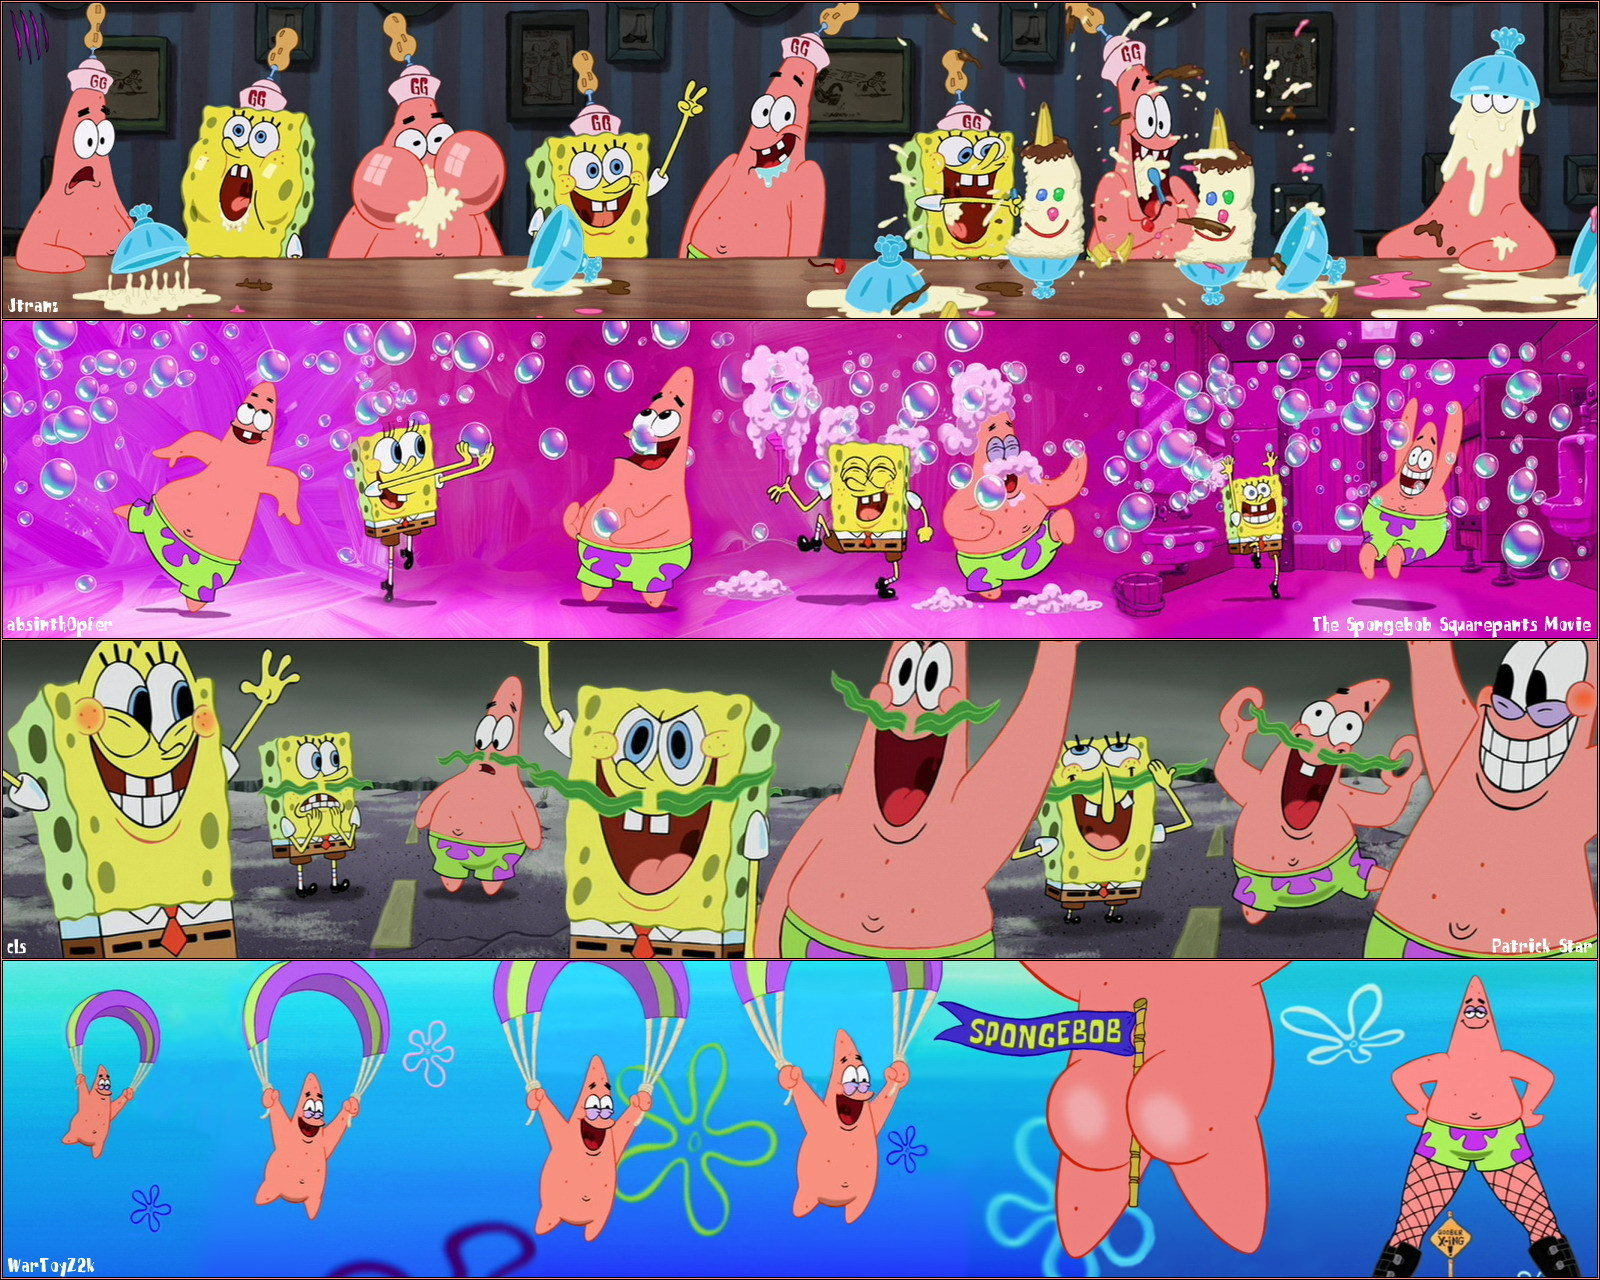 http://images2.fanpop.com/images/photos/2700000/patrick-patrick-star-spongebob-2746177-1600-1280.jpg